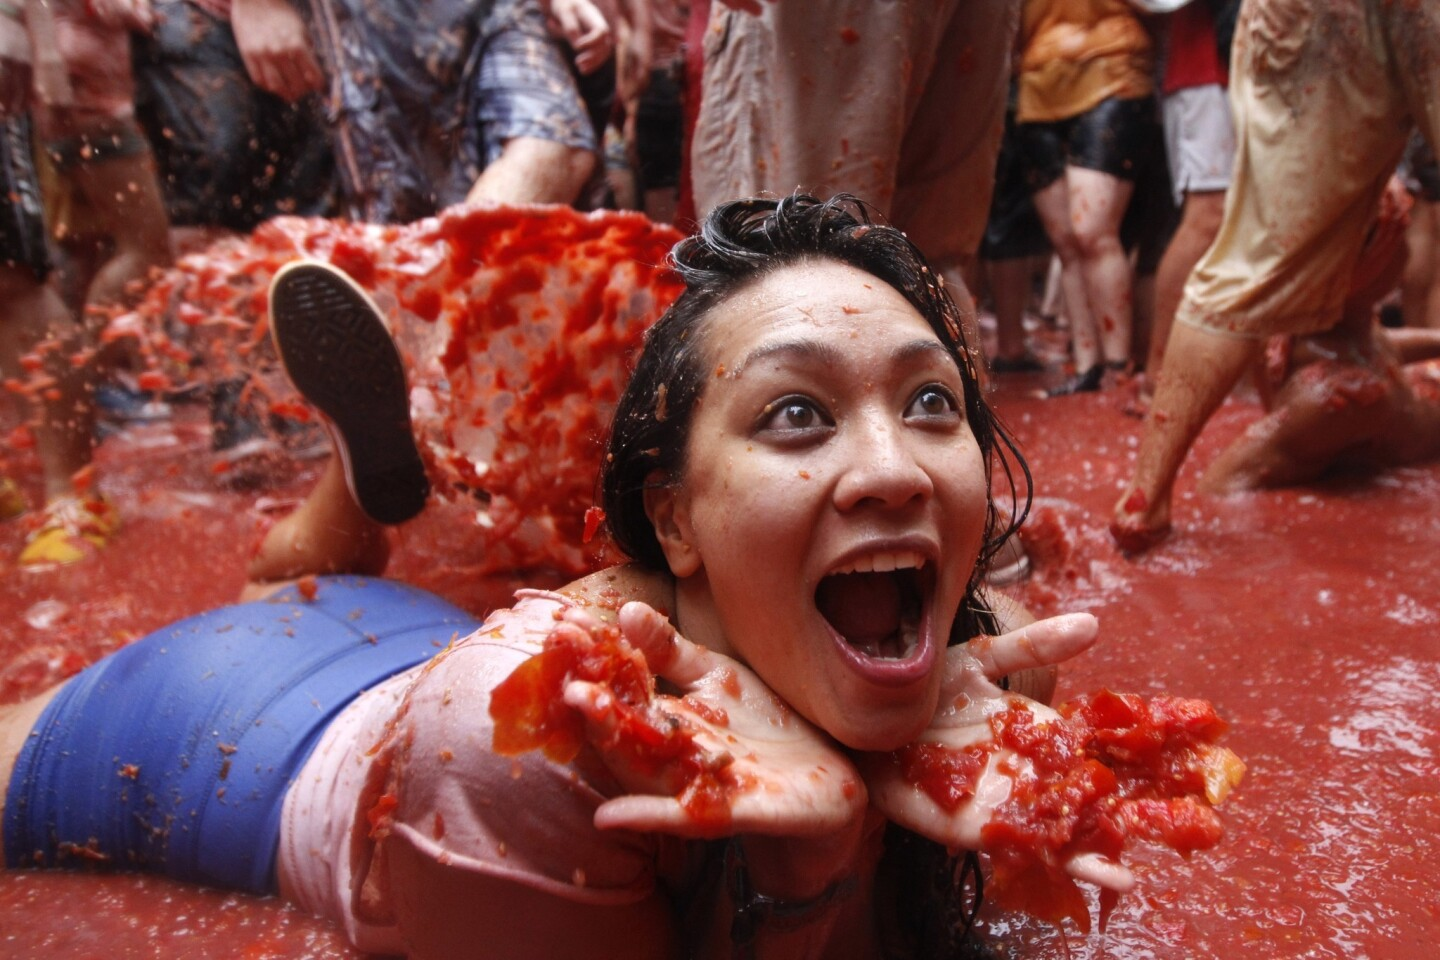 A participant in La Tomatina lies in a pool of tomatoes.